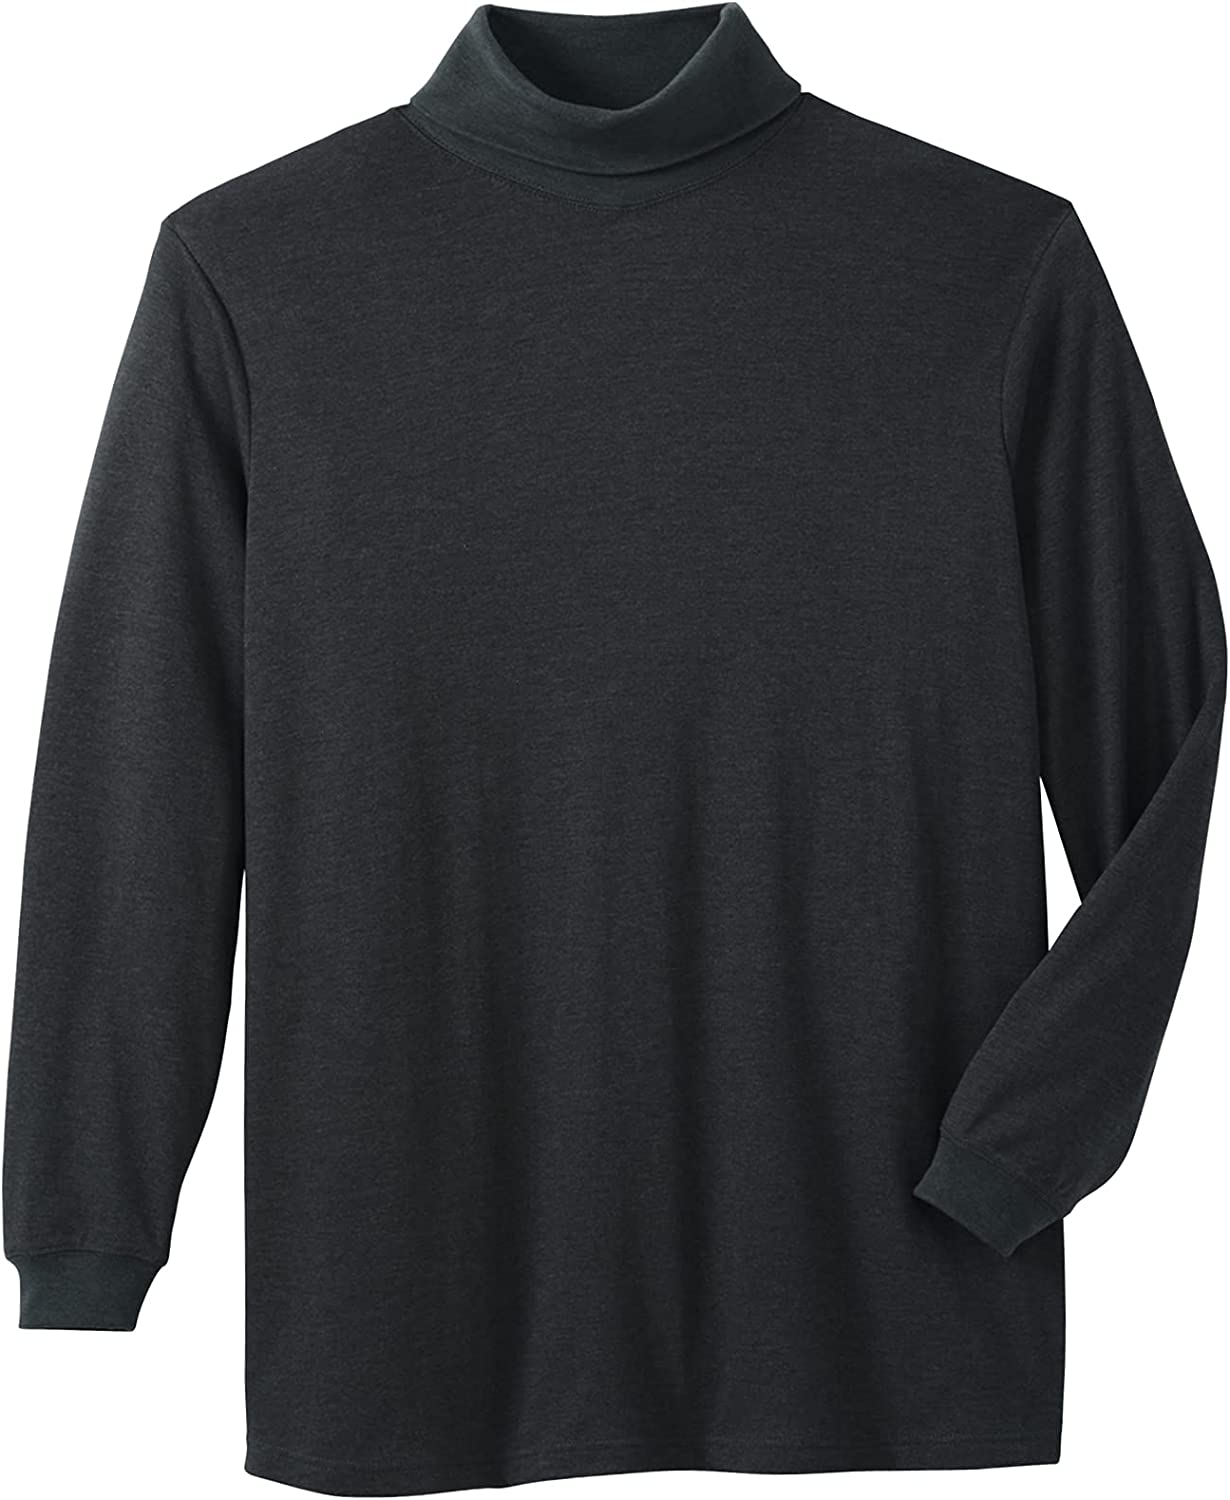 KQ/_ Mens Long Sleeves Acrylic Turtle Neck Turtleneck Sweater Stretch Jumpers Top